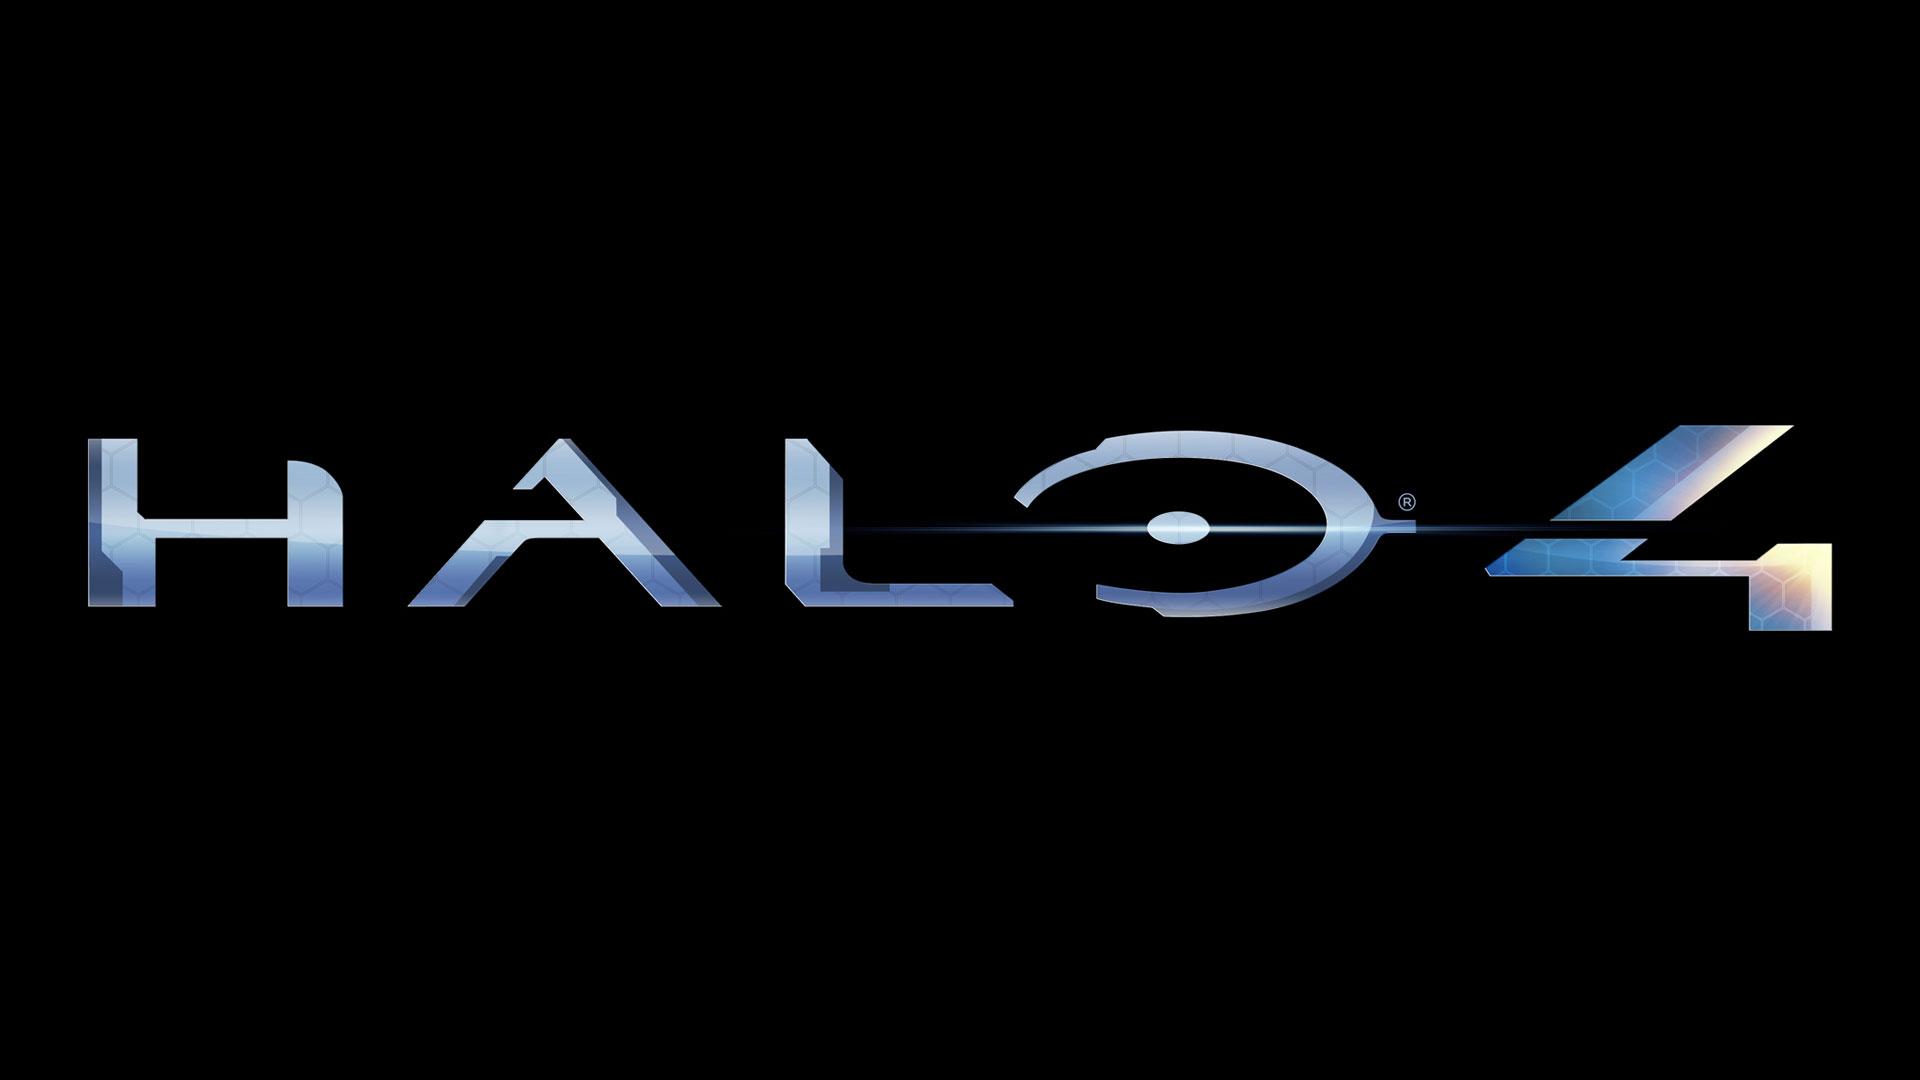 halo 4 logo wallpaper. Black Bedroom Furniture Sets. Home Design Ideas